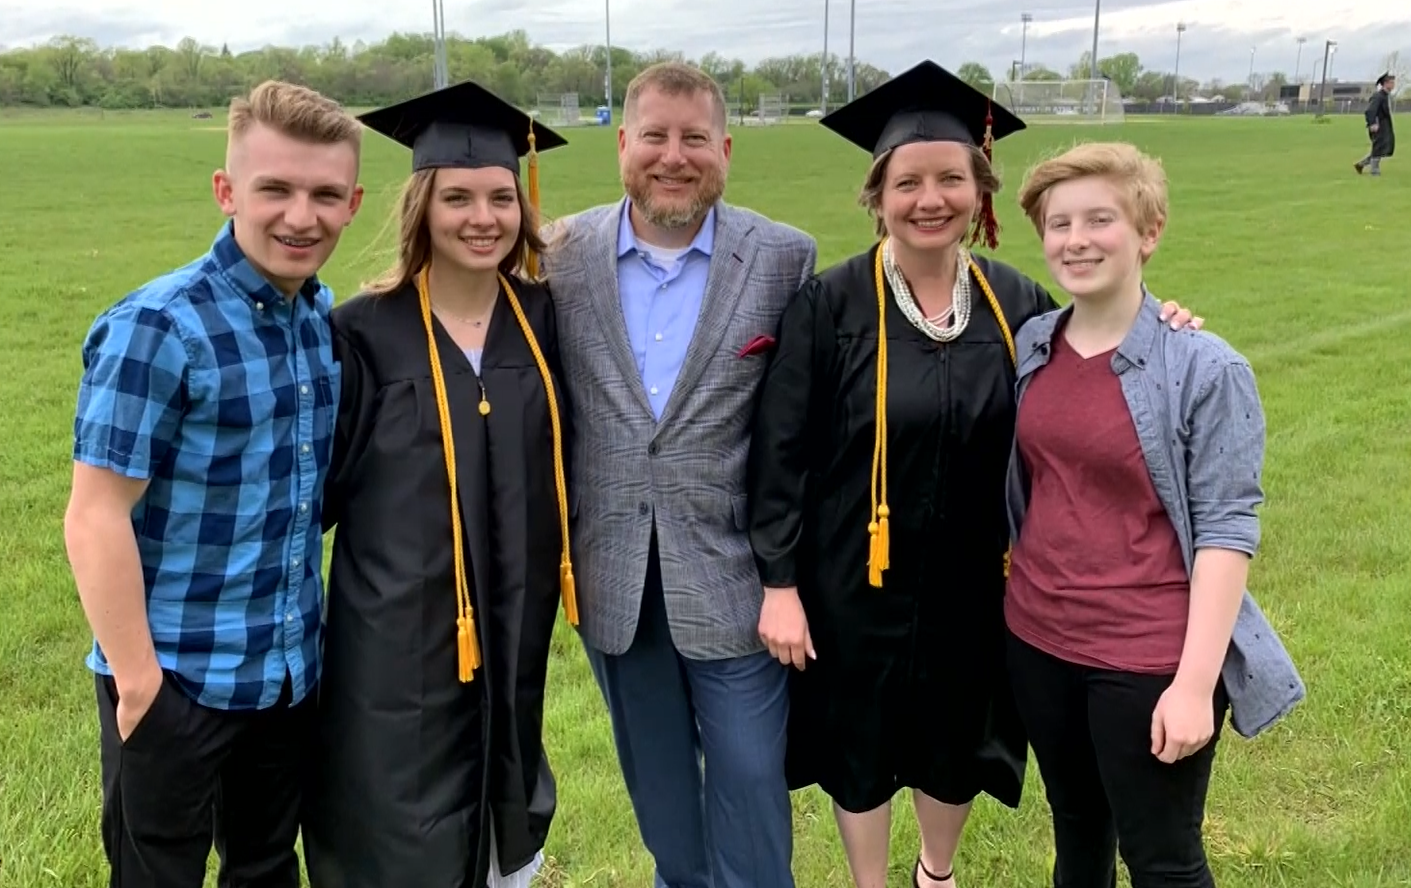 A mother and daughter walked across the graduation stage together at the University of Wisconsin-Whitewater's commencement ceremony (WMTV/CNN Newsource)